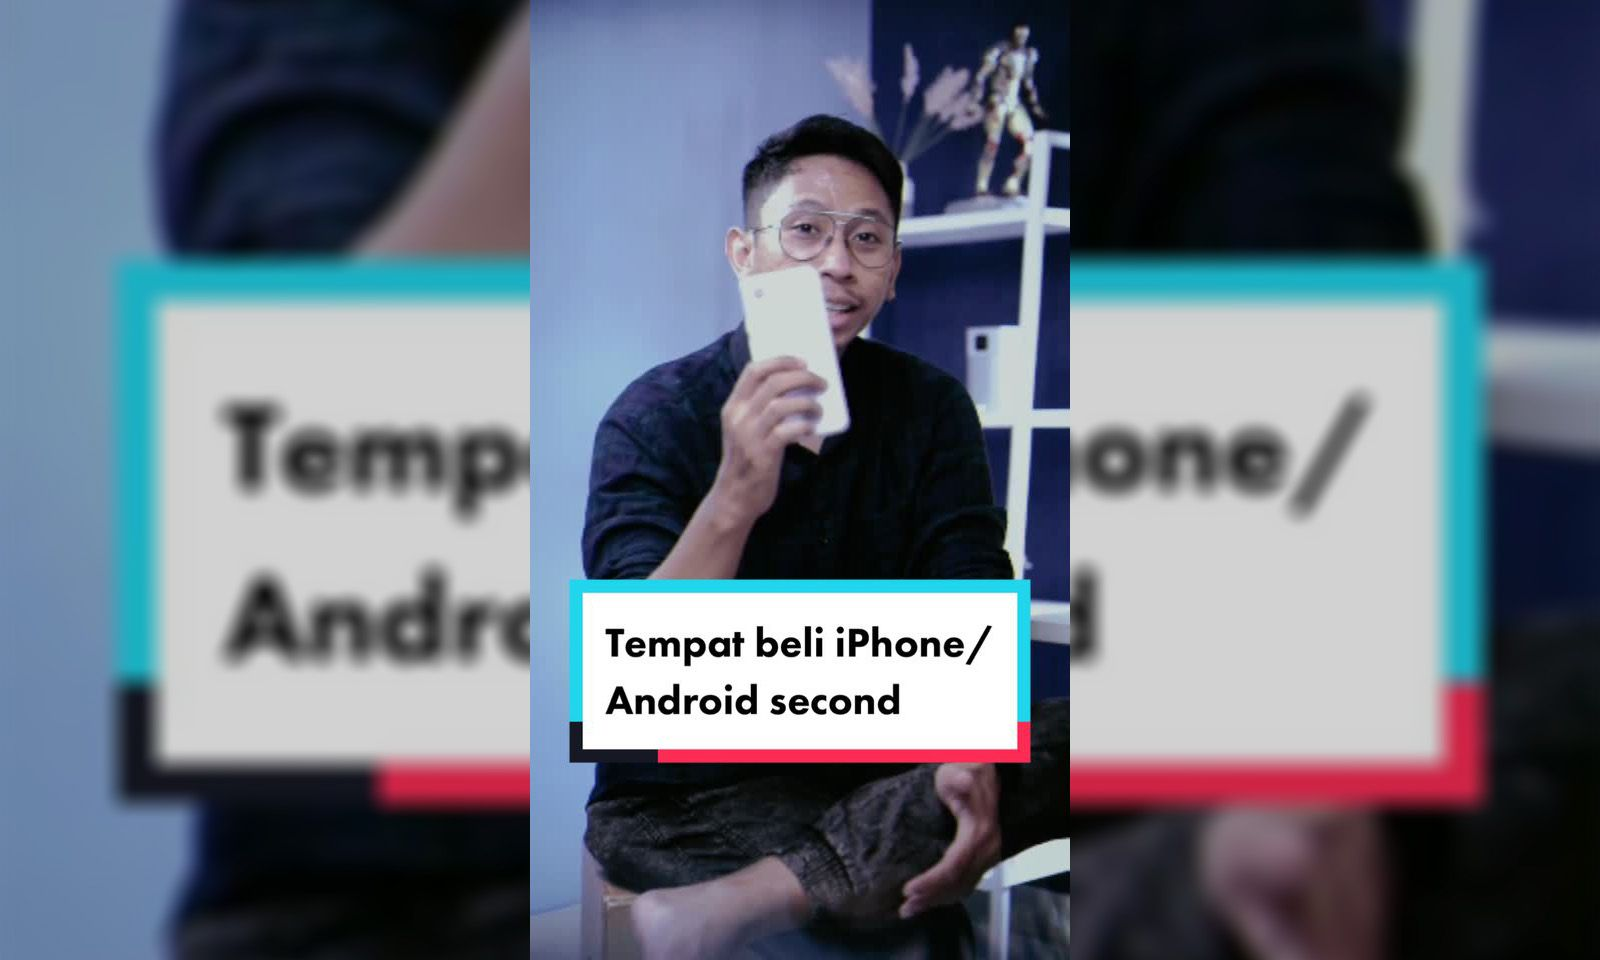 Tempat beli iPhone dan Android Second @droidlime_official